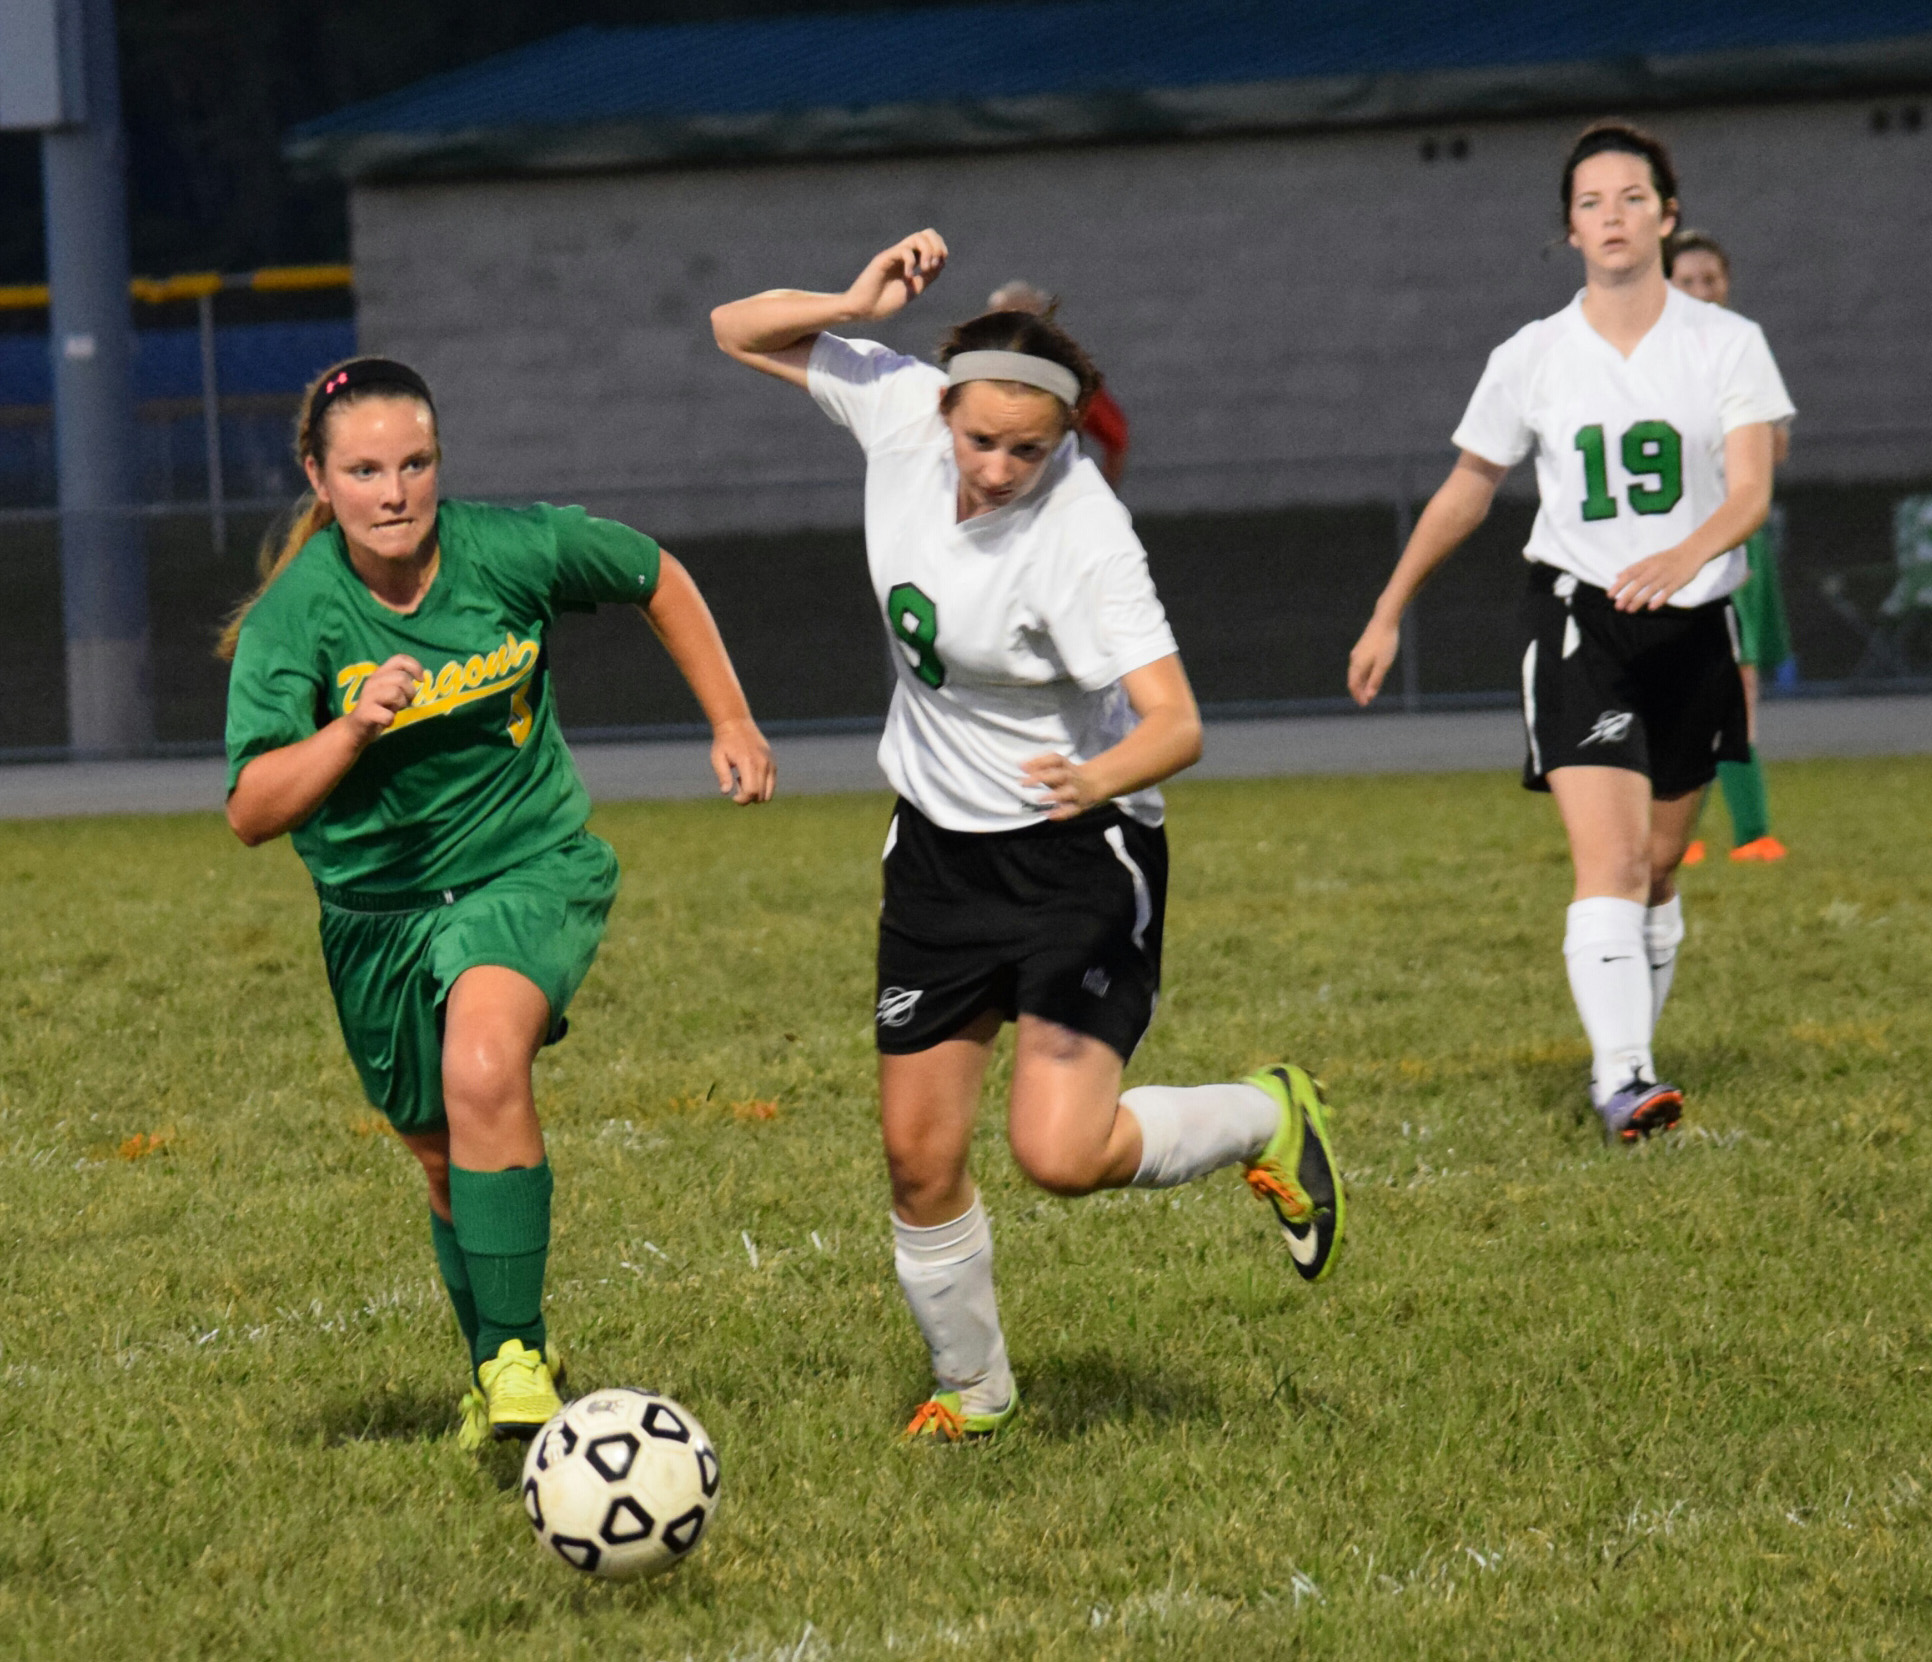 West Union's Shannon Runyan, left,  chases down the ball with Fayetteville players in pursuit during the Lady Dragons' 3-1 win on Monday night.